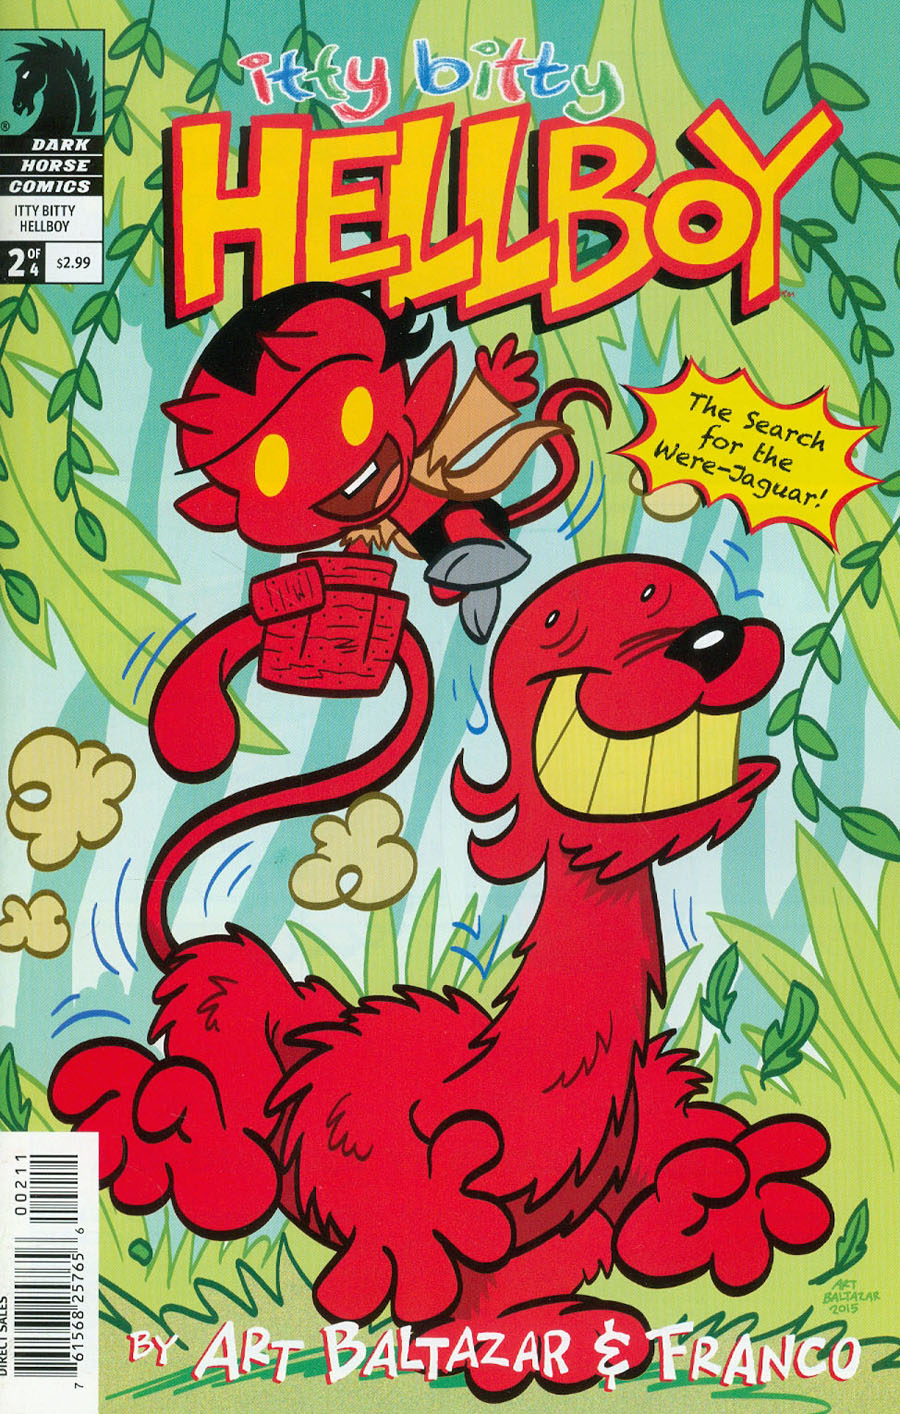 Itty Bitty Hellboy Search For The Were-Jaguar #2